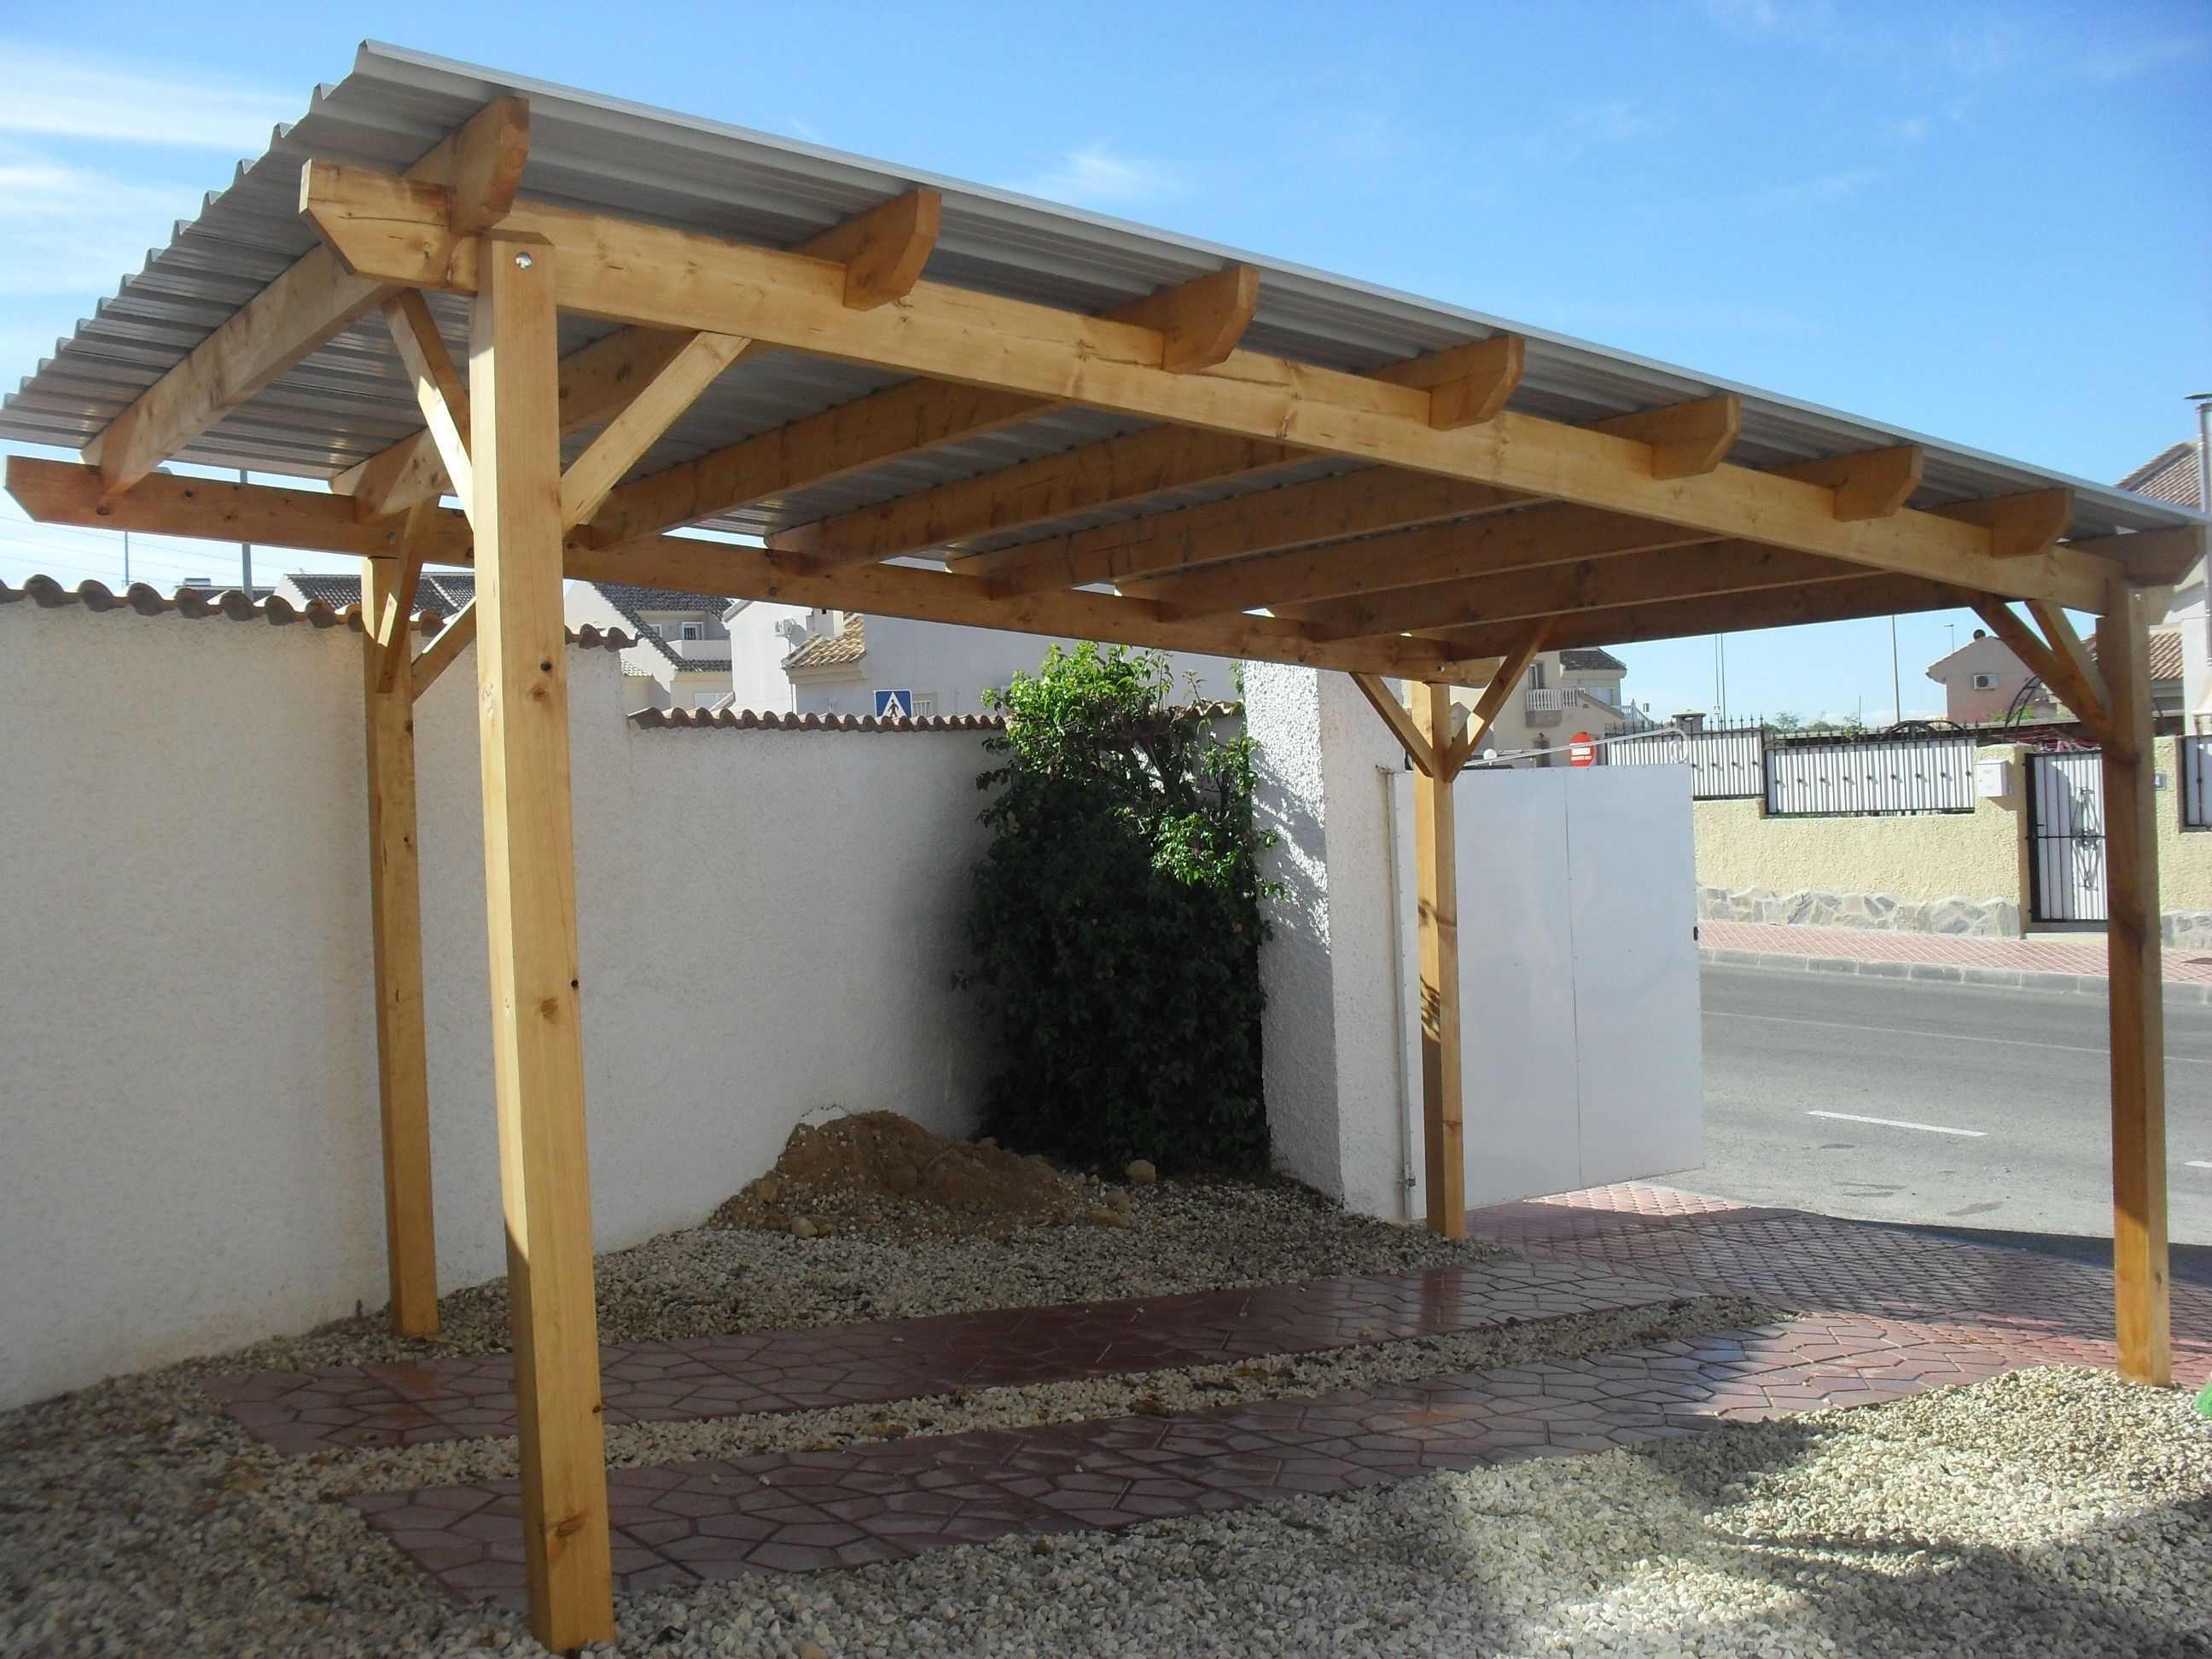 Adorable Home Depot Carport Kits On Carports Metal Roof Carport